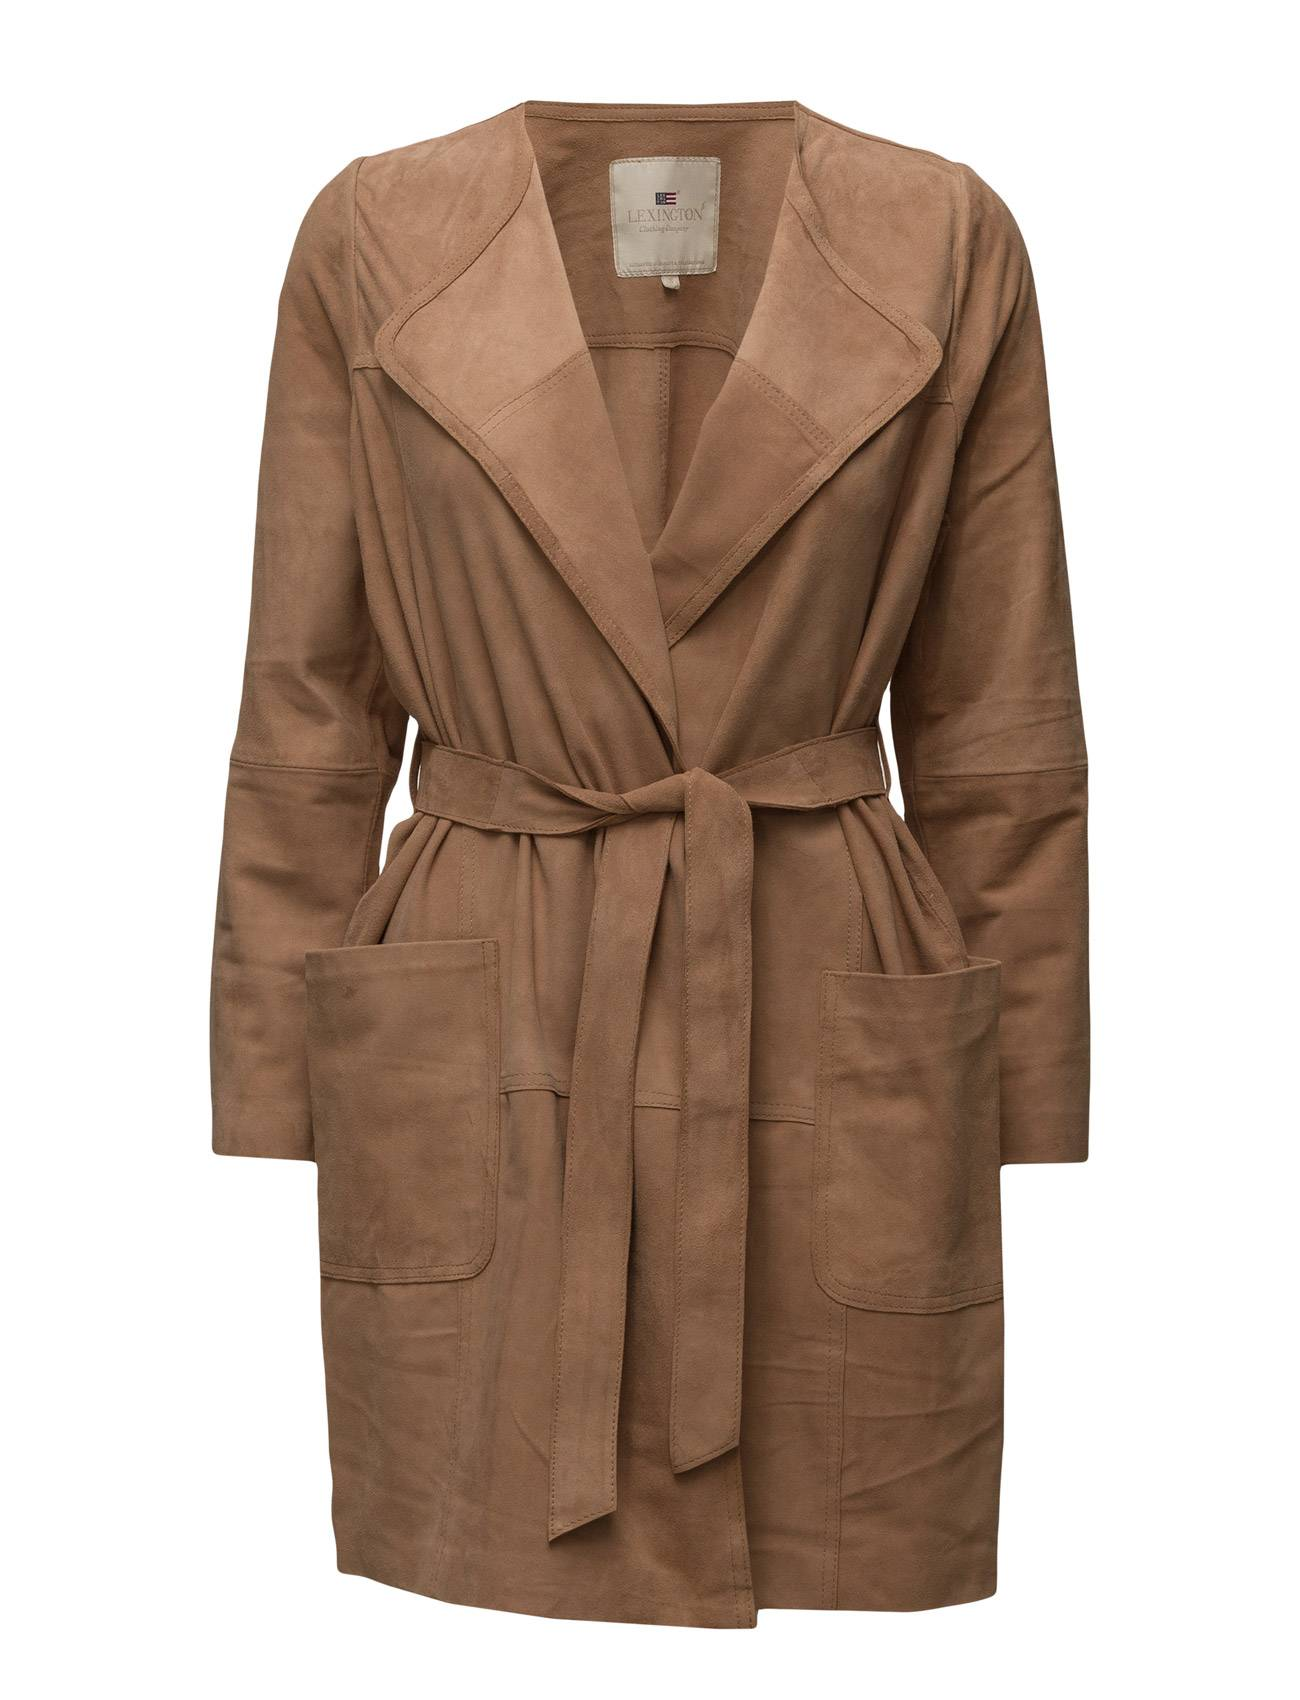 Lexington Company Callie Suede Coat